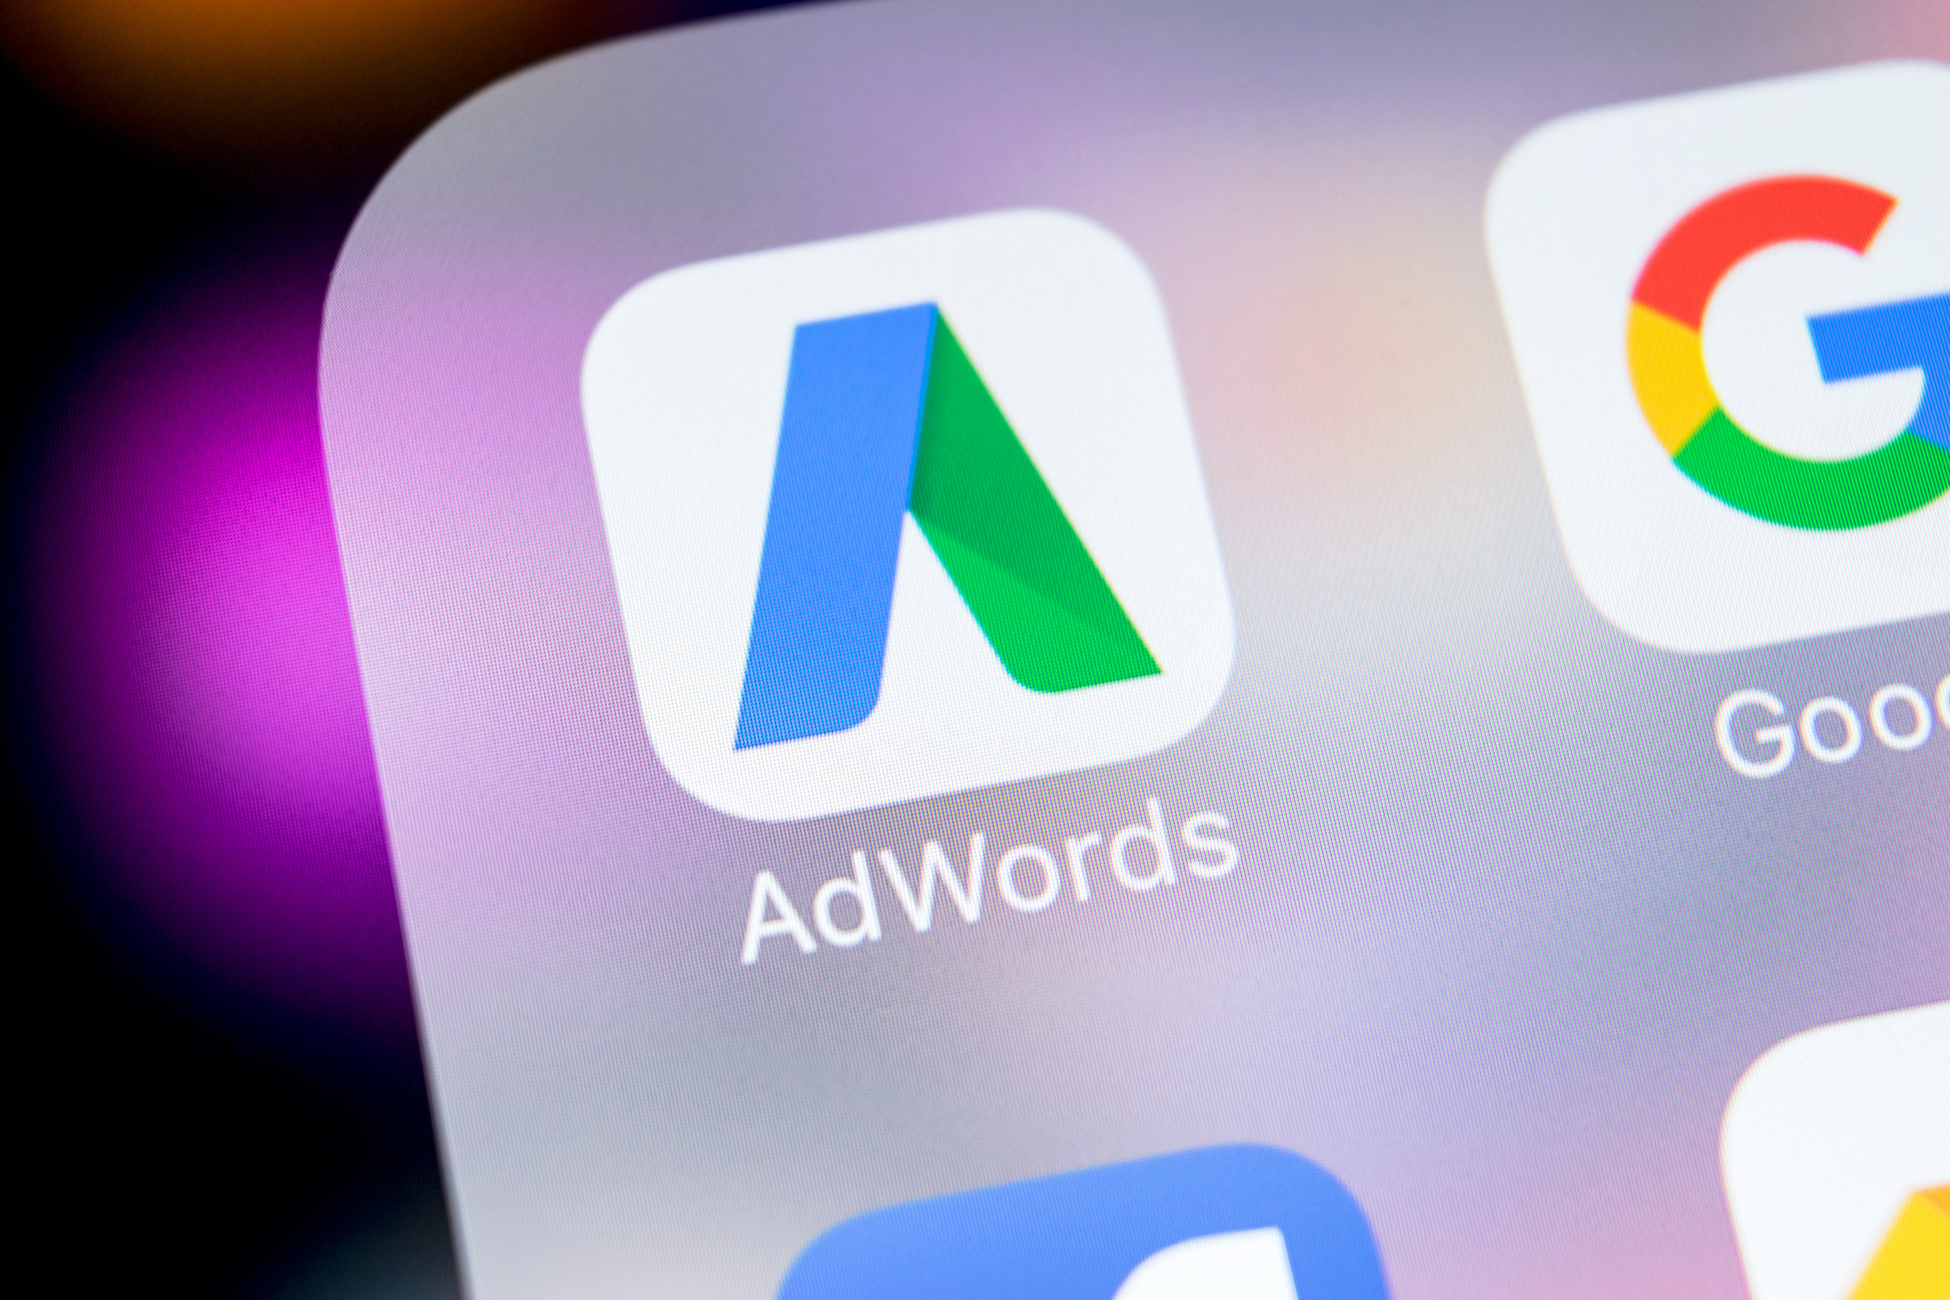 AdWords Icon on phone screen